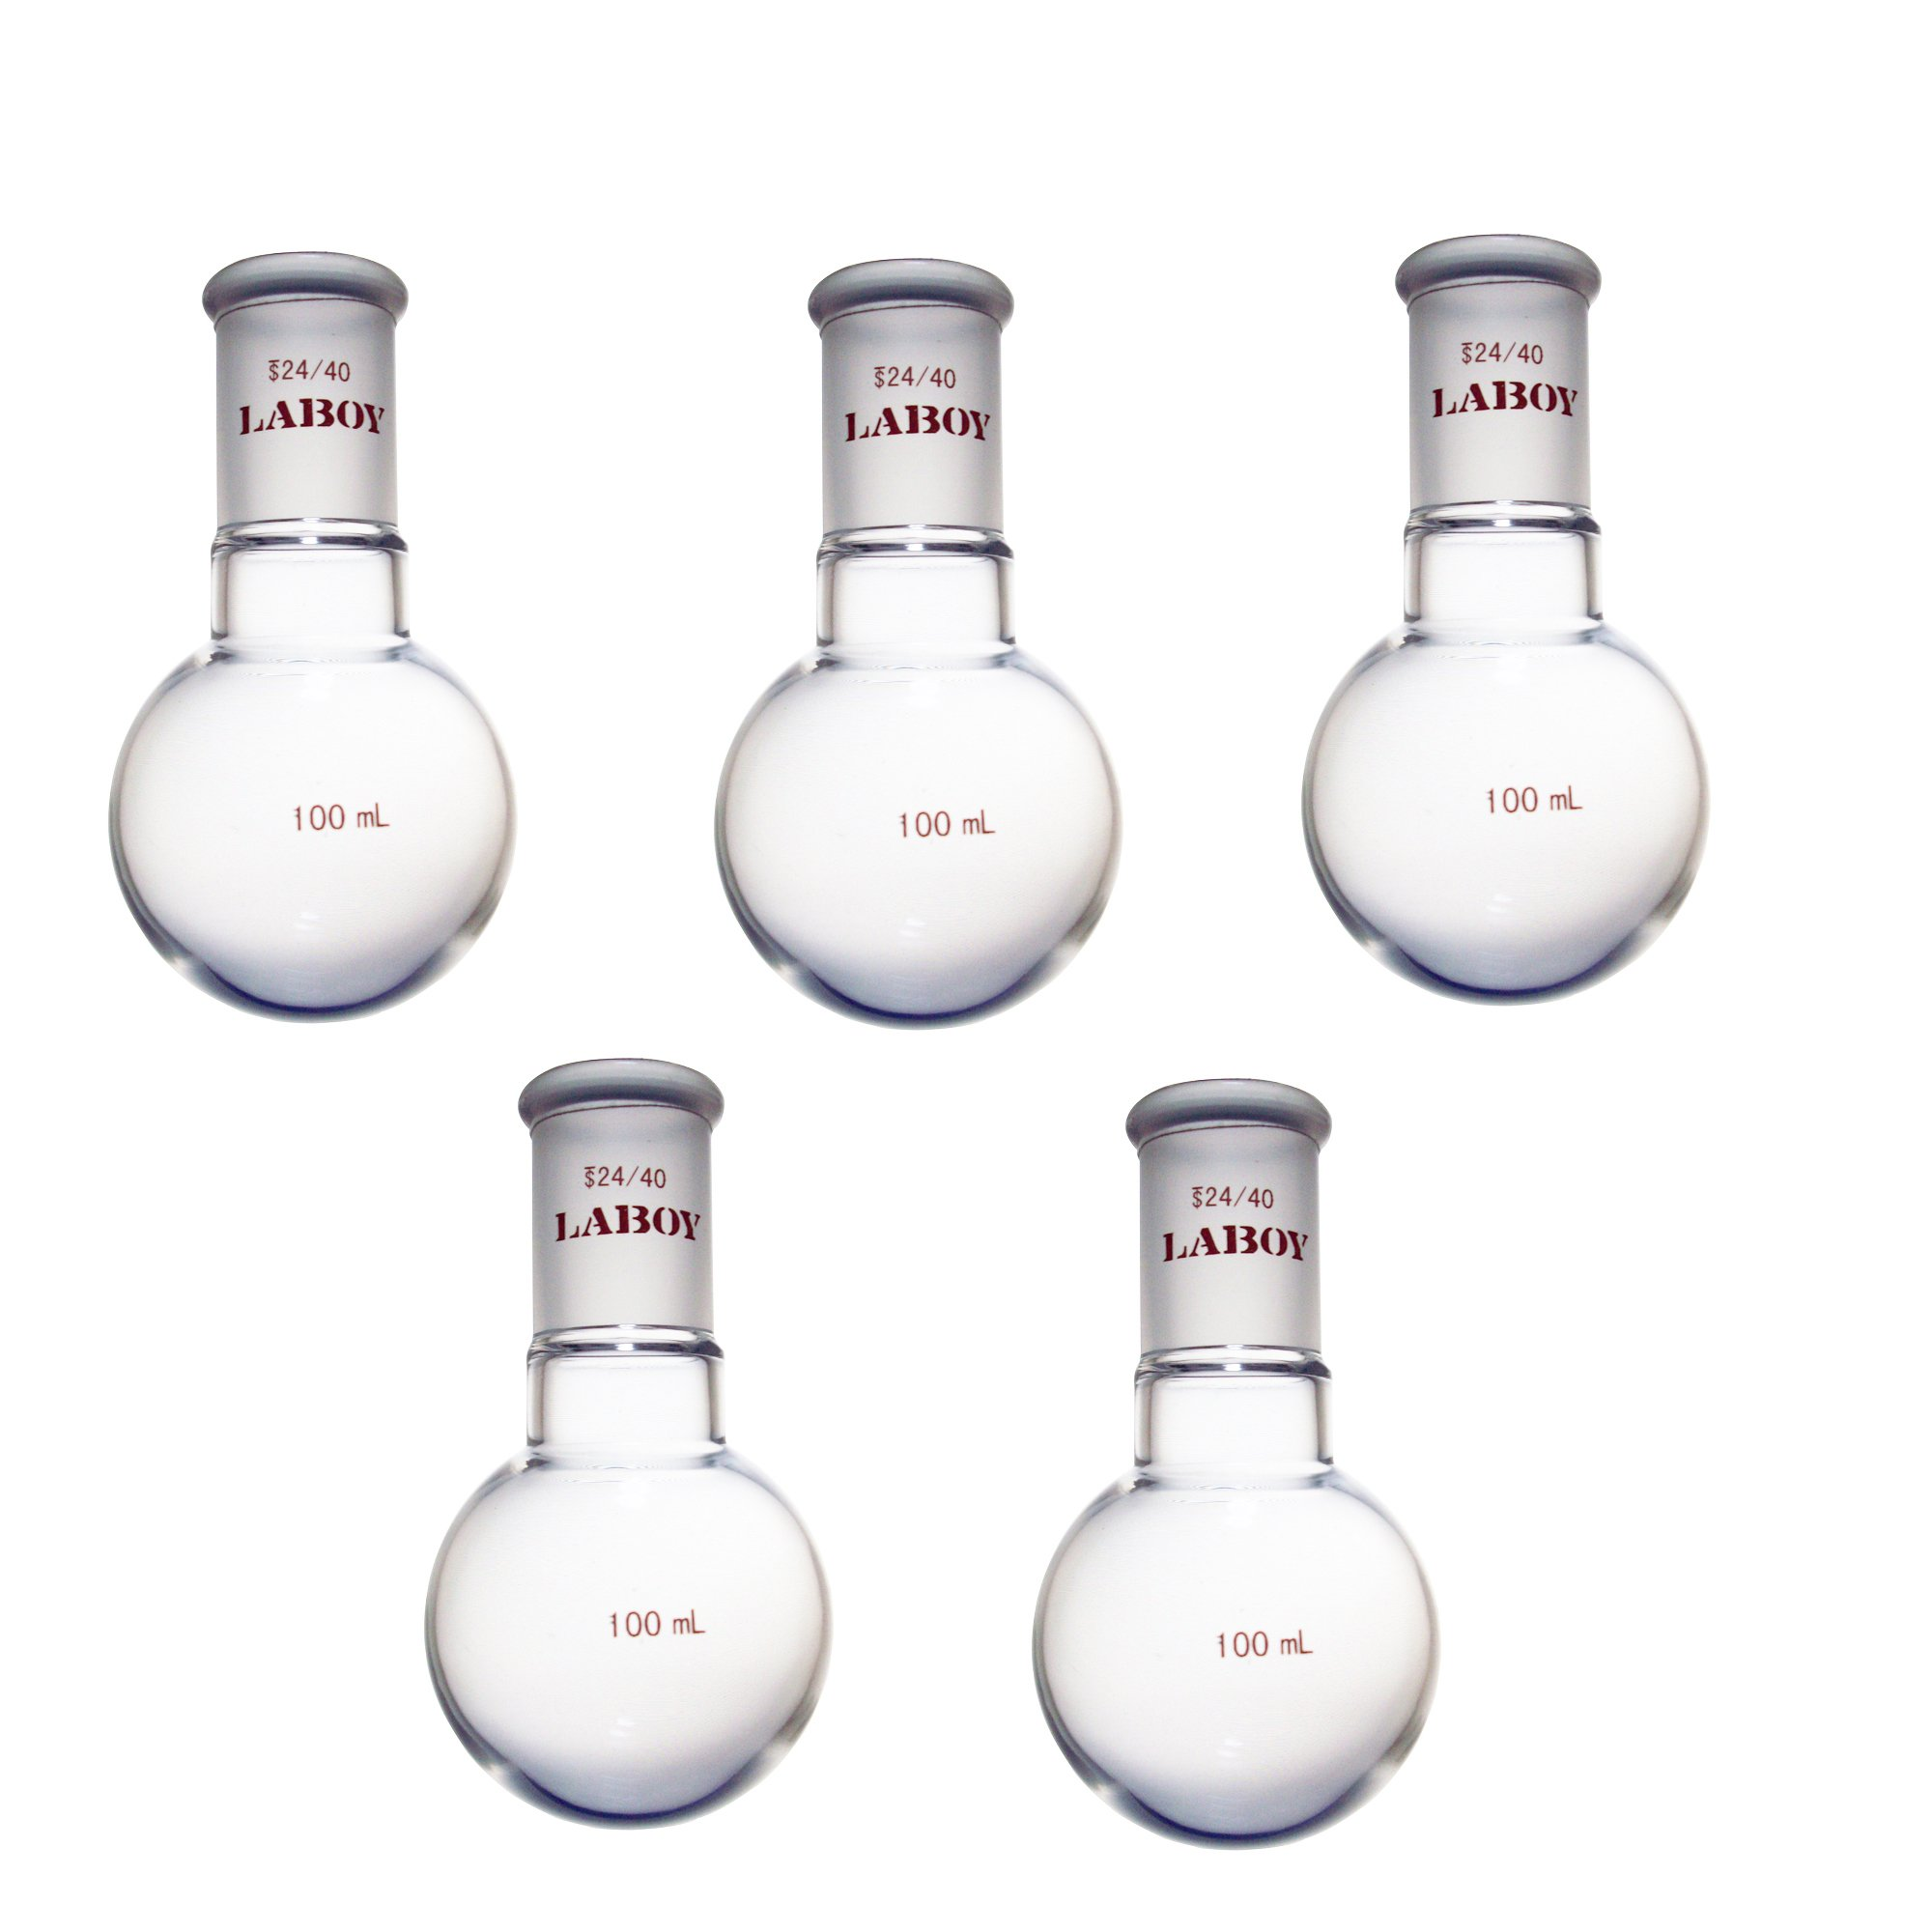 Laboy HMF010312L Glass Single Neck Round Bottom Boiling Flask 100 mL with 24/40 Joint (Pack of 5)